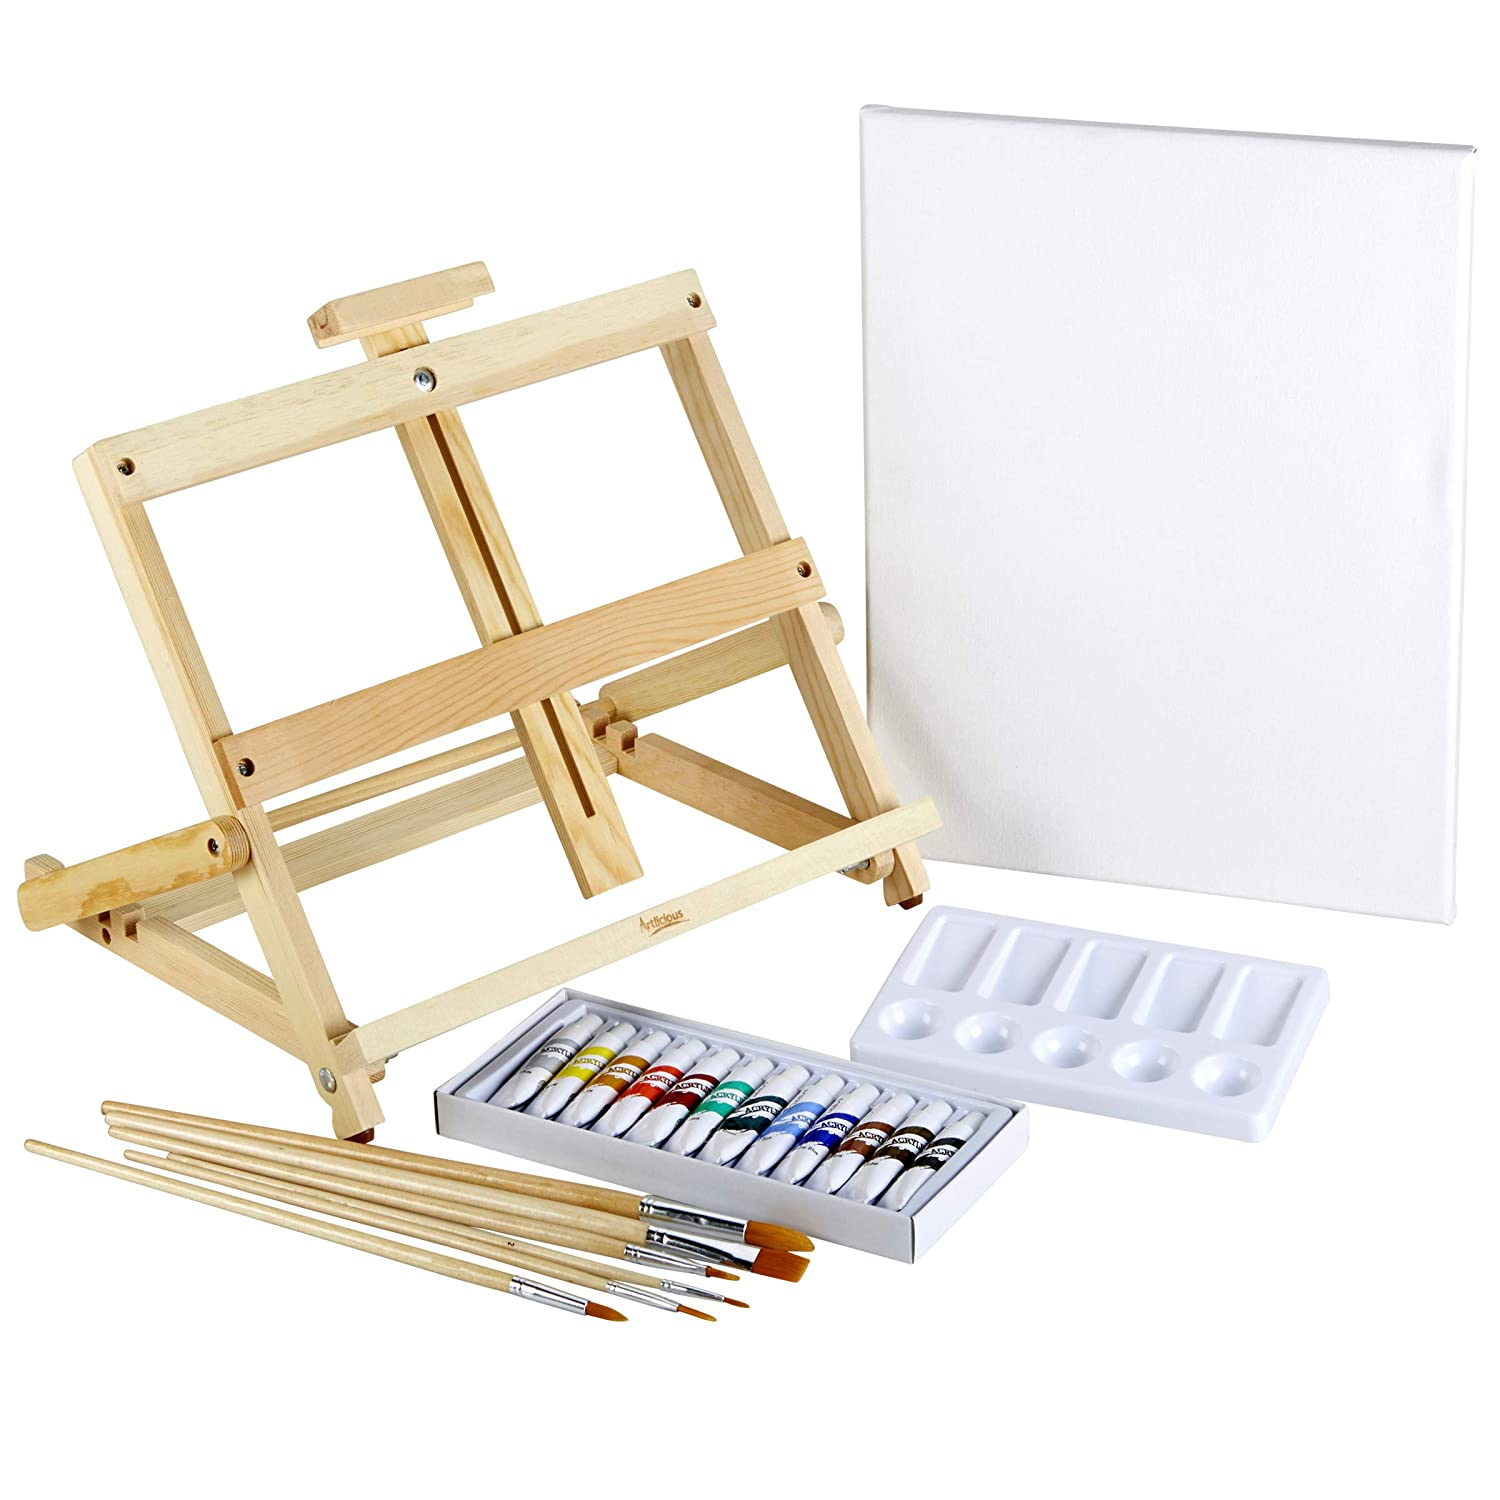 Artlicious Complete 35 Piece Easel Set - Easel, Stretched Canvas, Acrylic Paints, Paint Brushes & Palette (35 Piece Set) Sorillo Brands